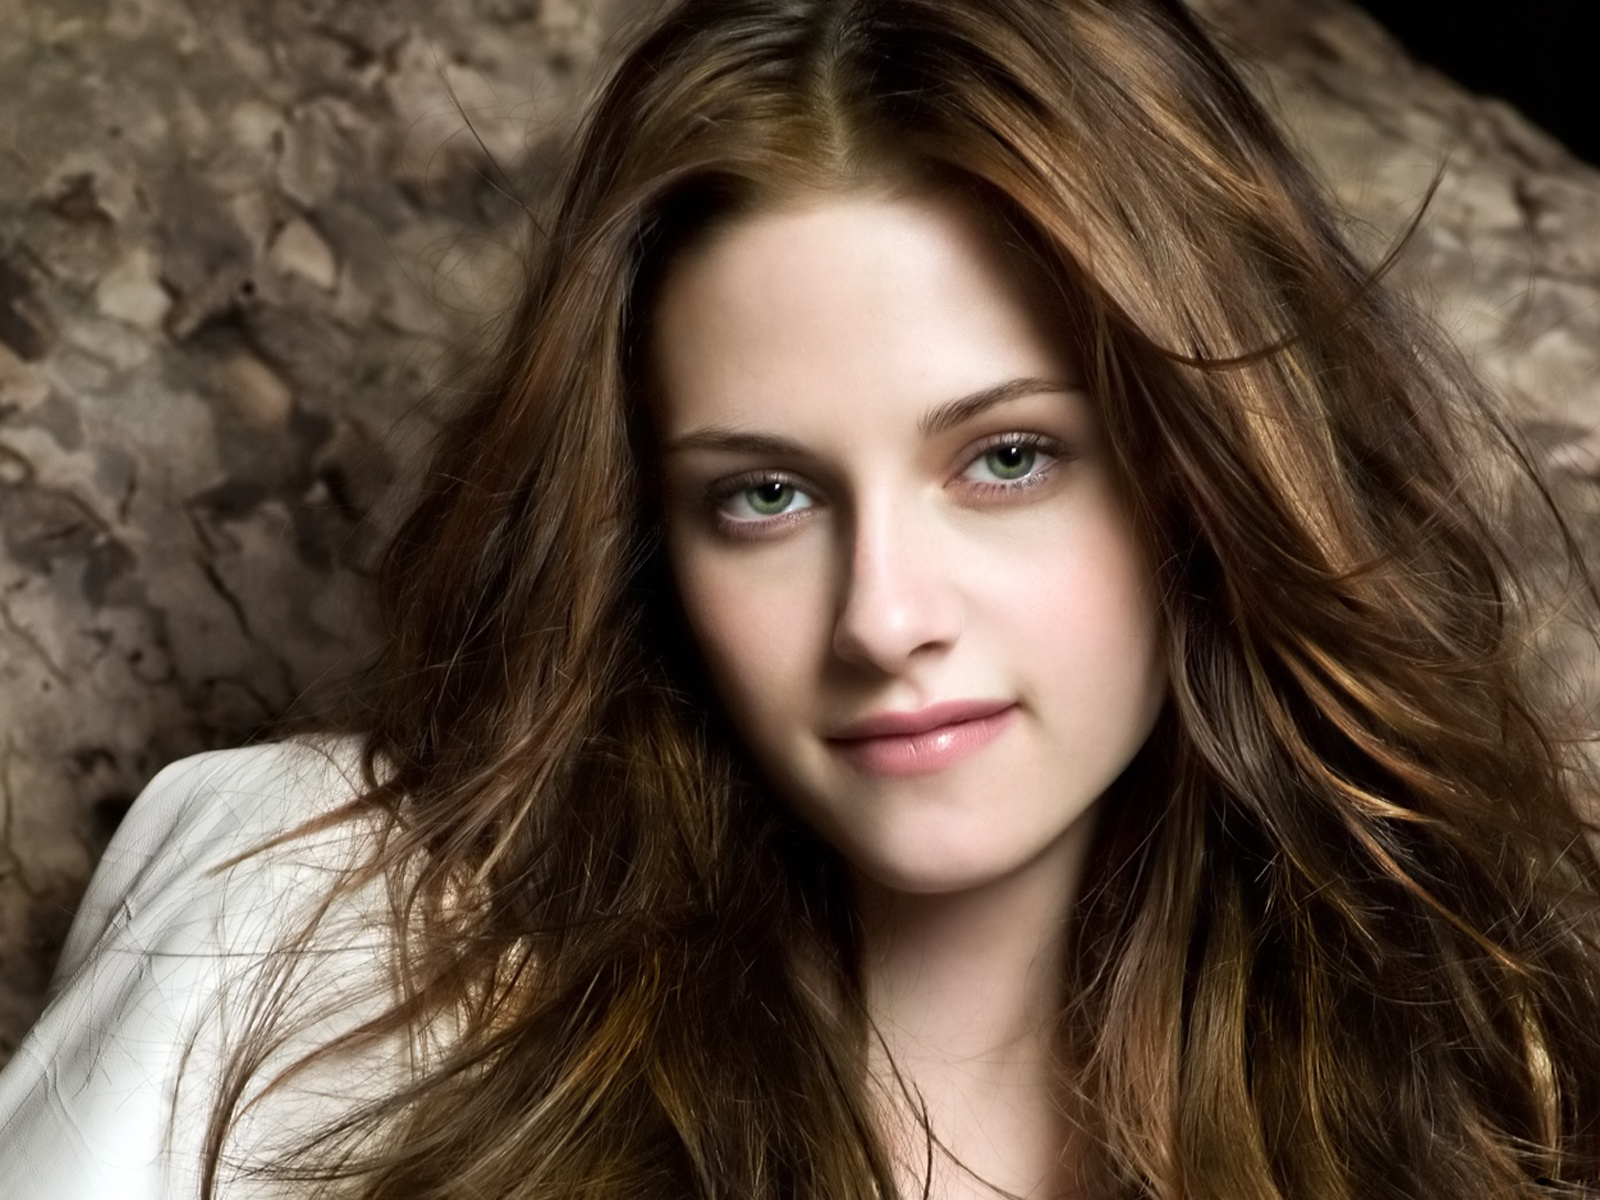 awesome kristen stewart without make up